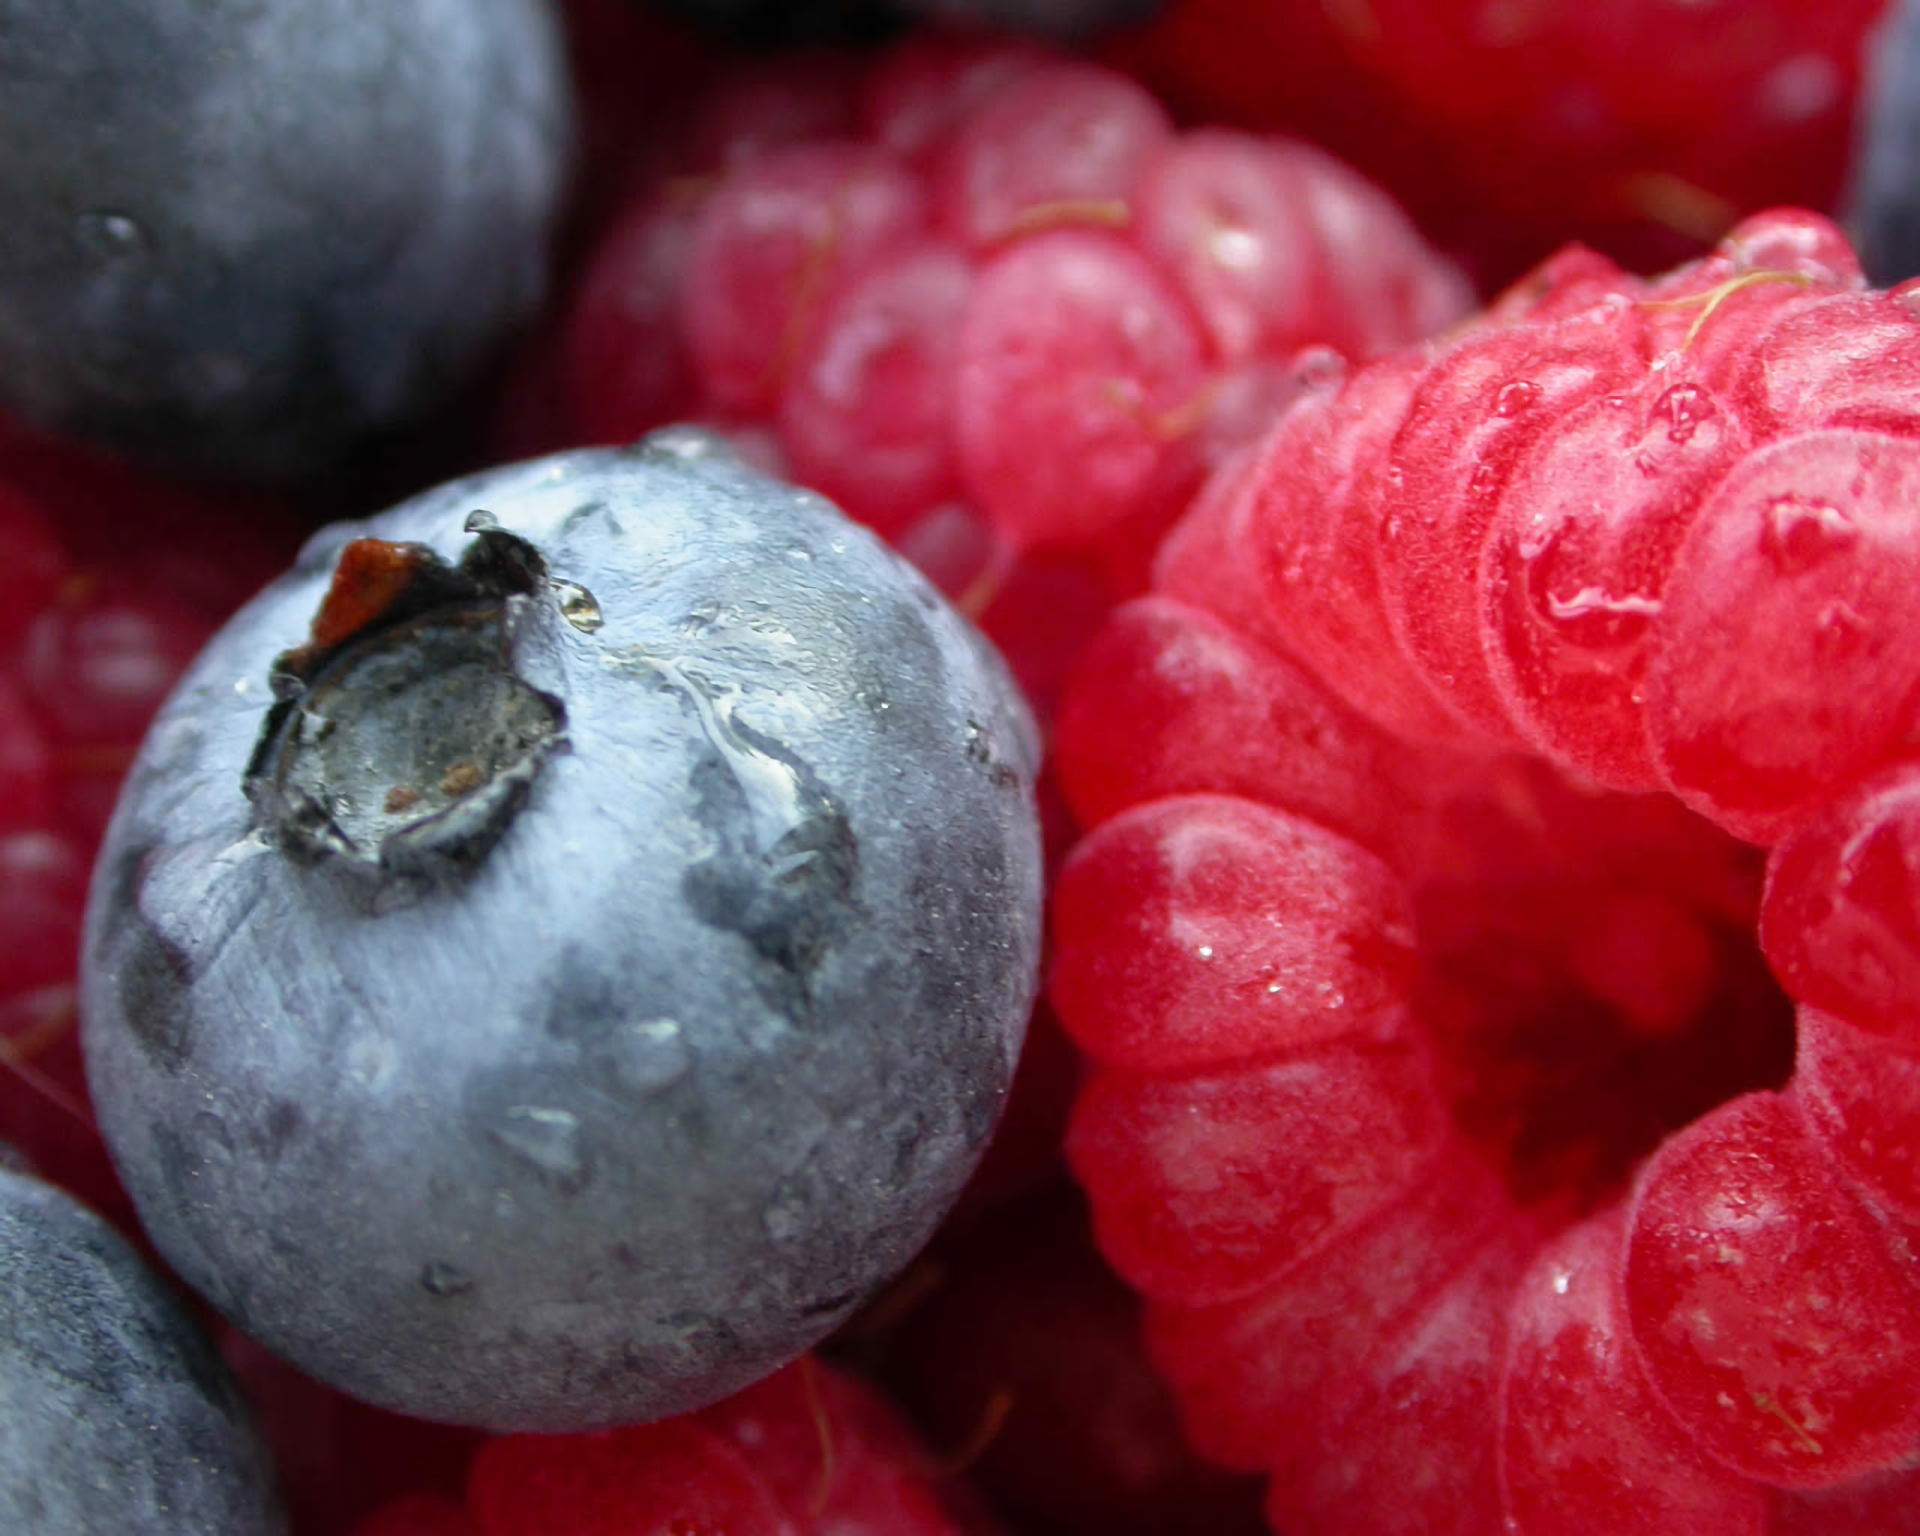 Food - Berry  Raspberry Blueberry Fruit Wallpaper